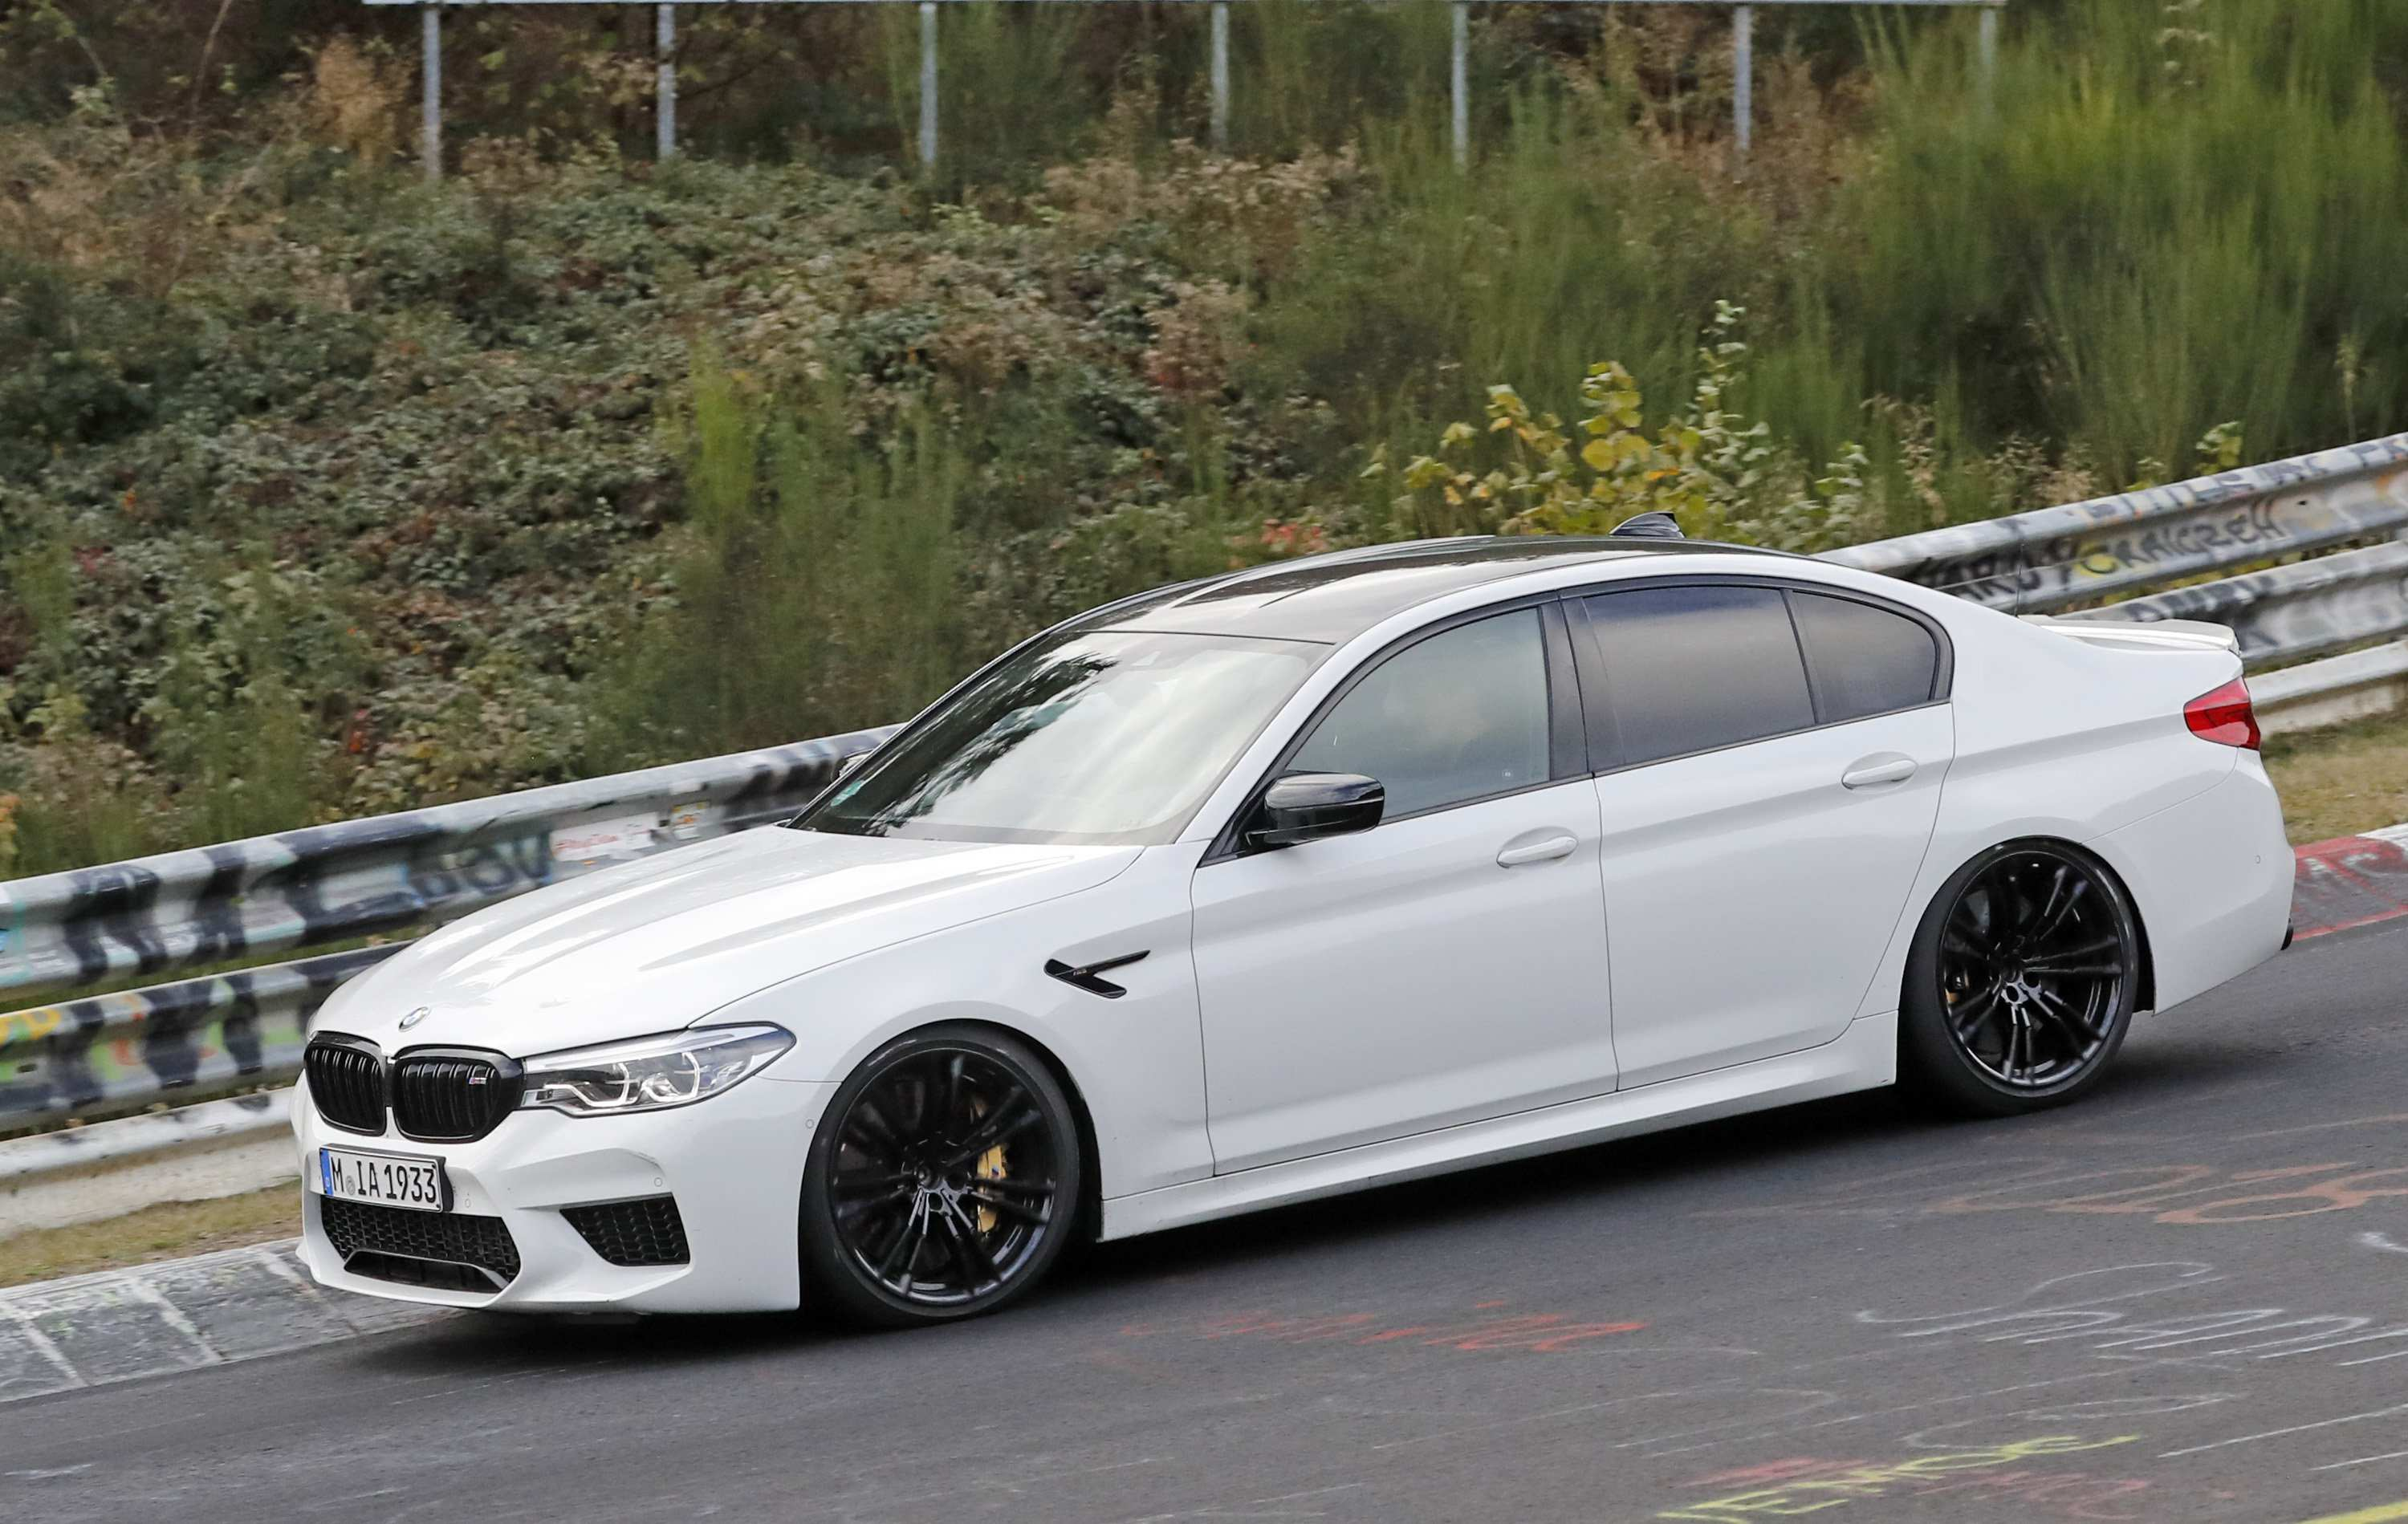 25 Great Bmw M5 2020 Photos with Bmw M5 2020